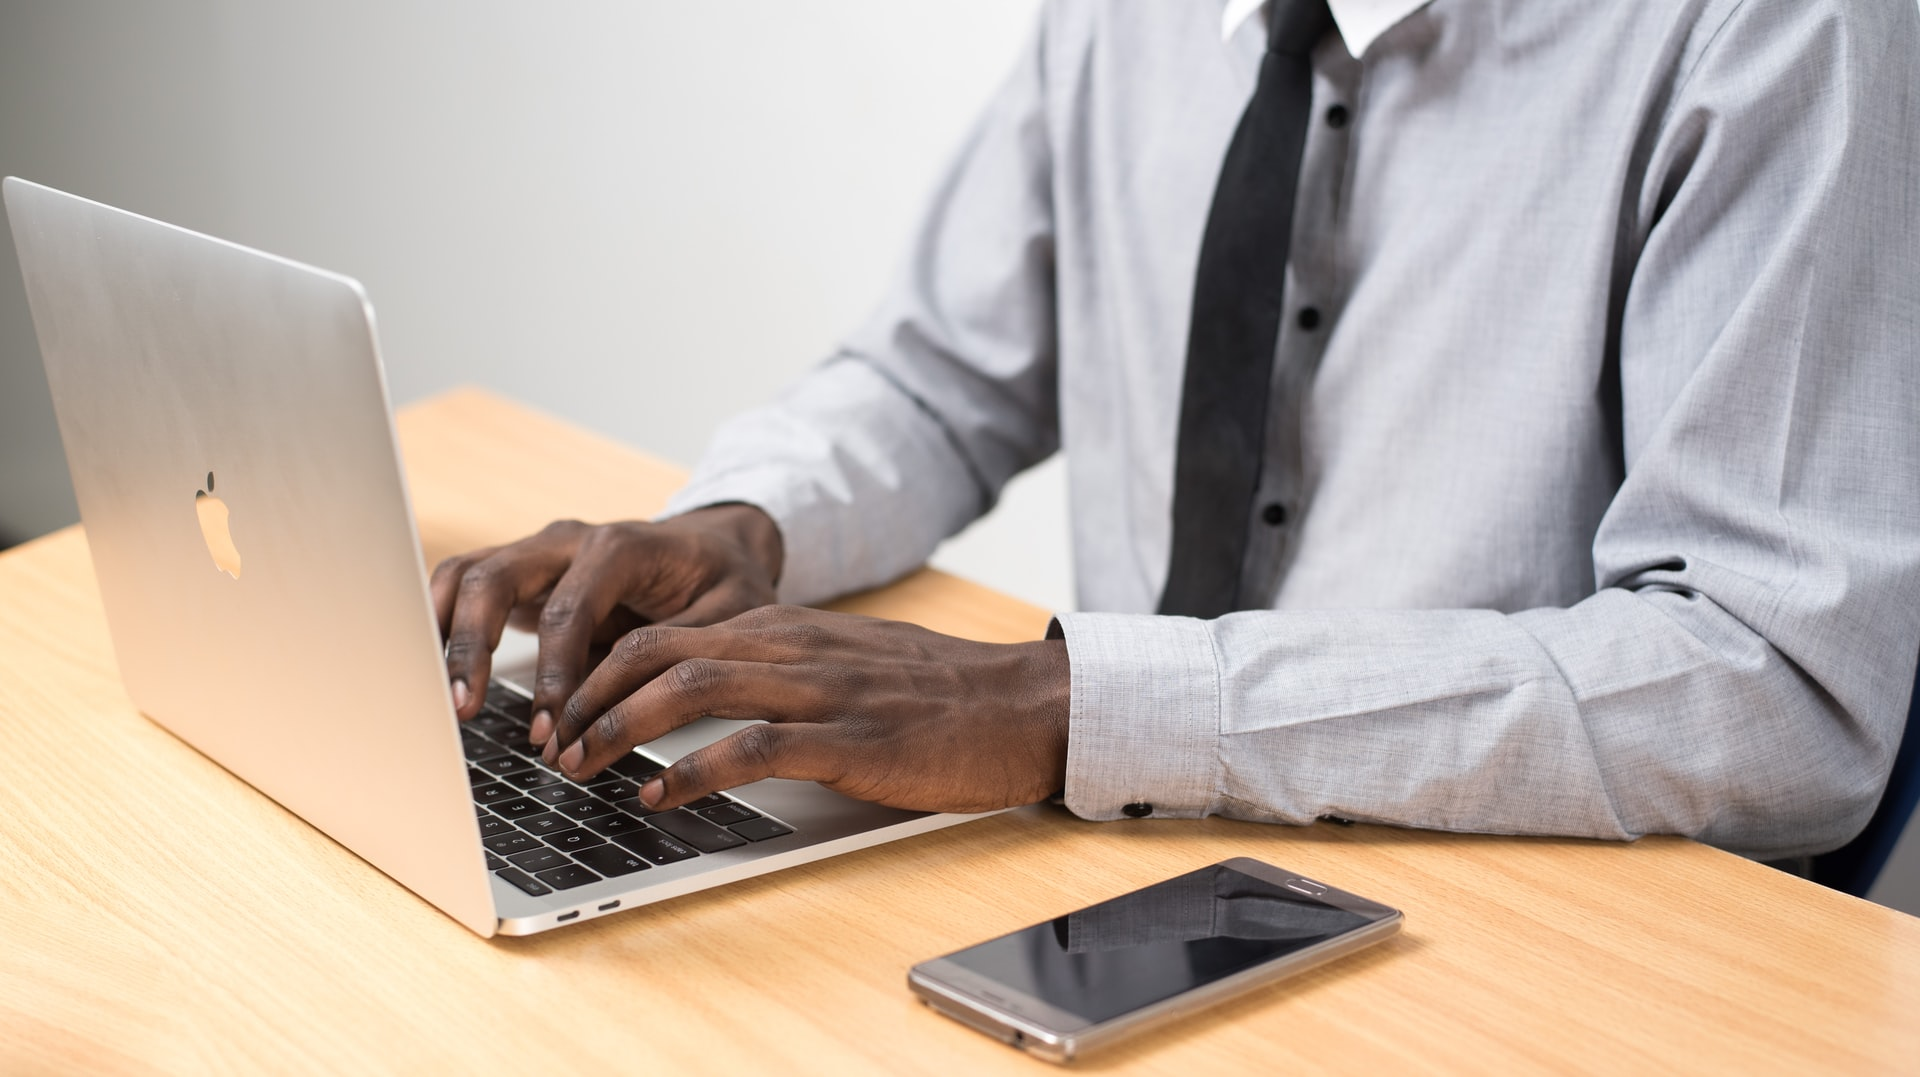 Photo of a man sitting behind a laptop